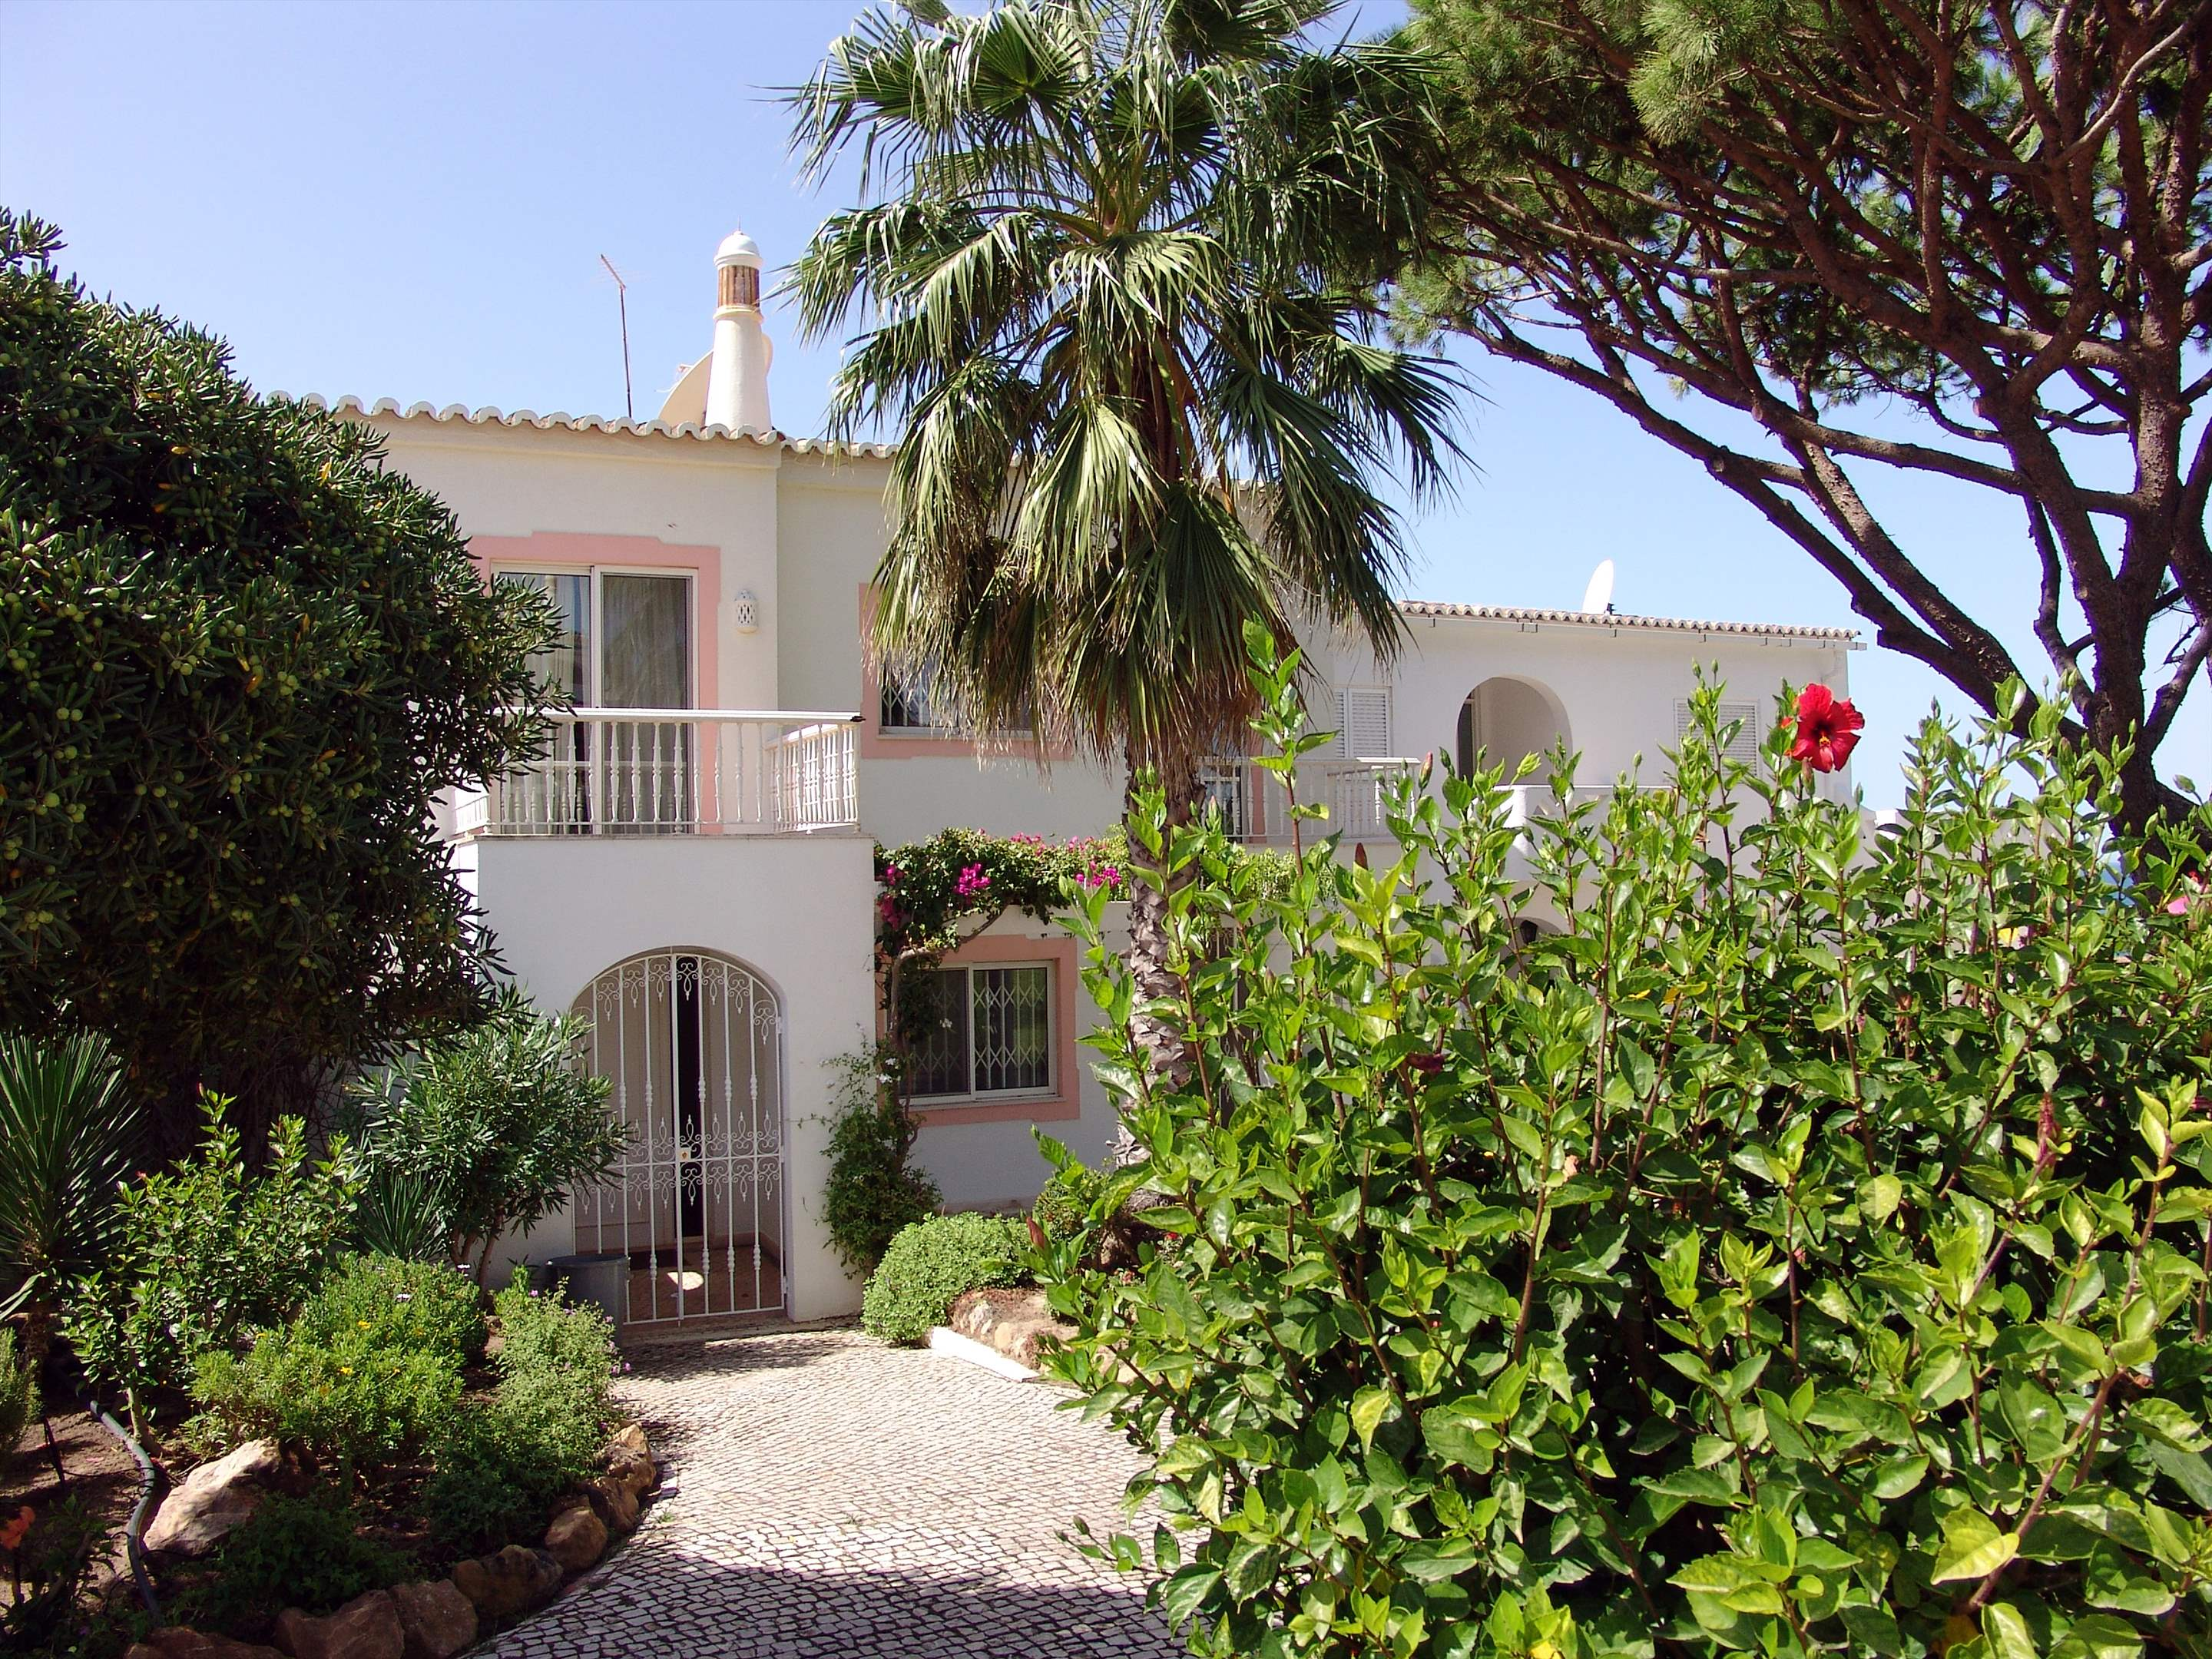 Villas Louisa, 5 bedroom, 5 bedroom villa in Vale do Lobo, Algarve Photo #25